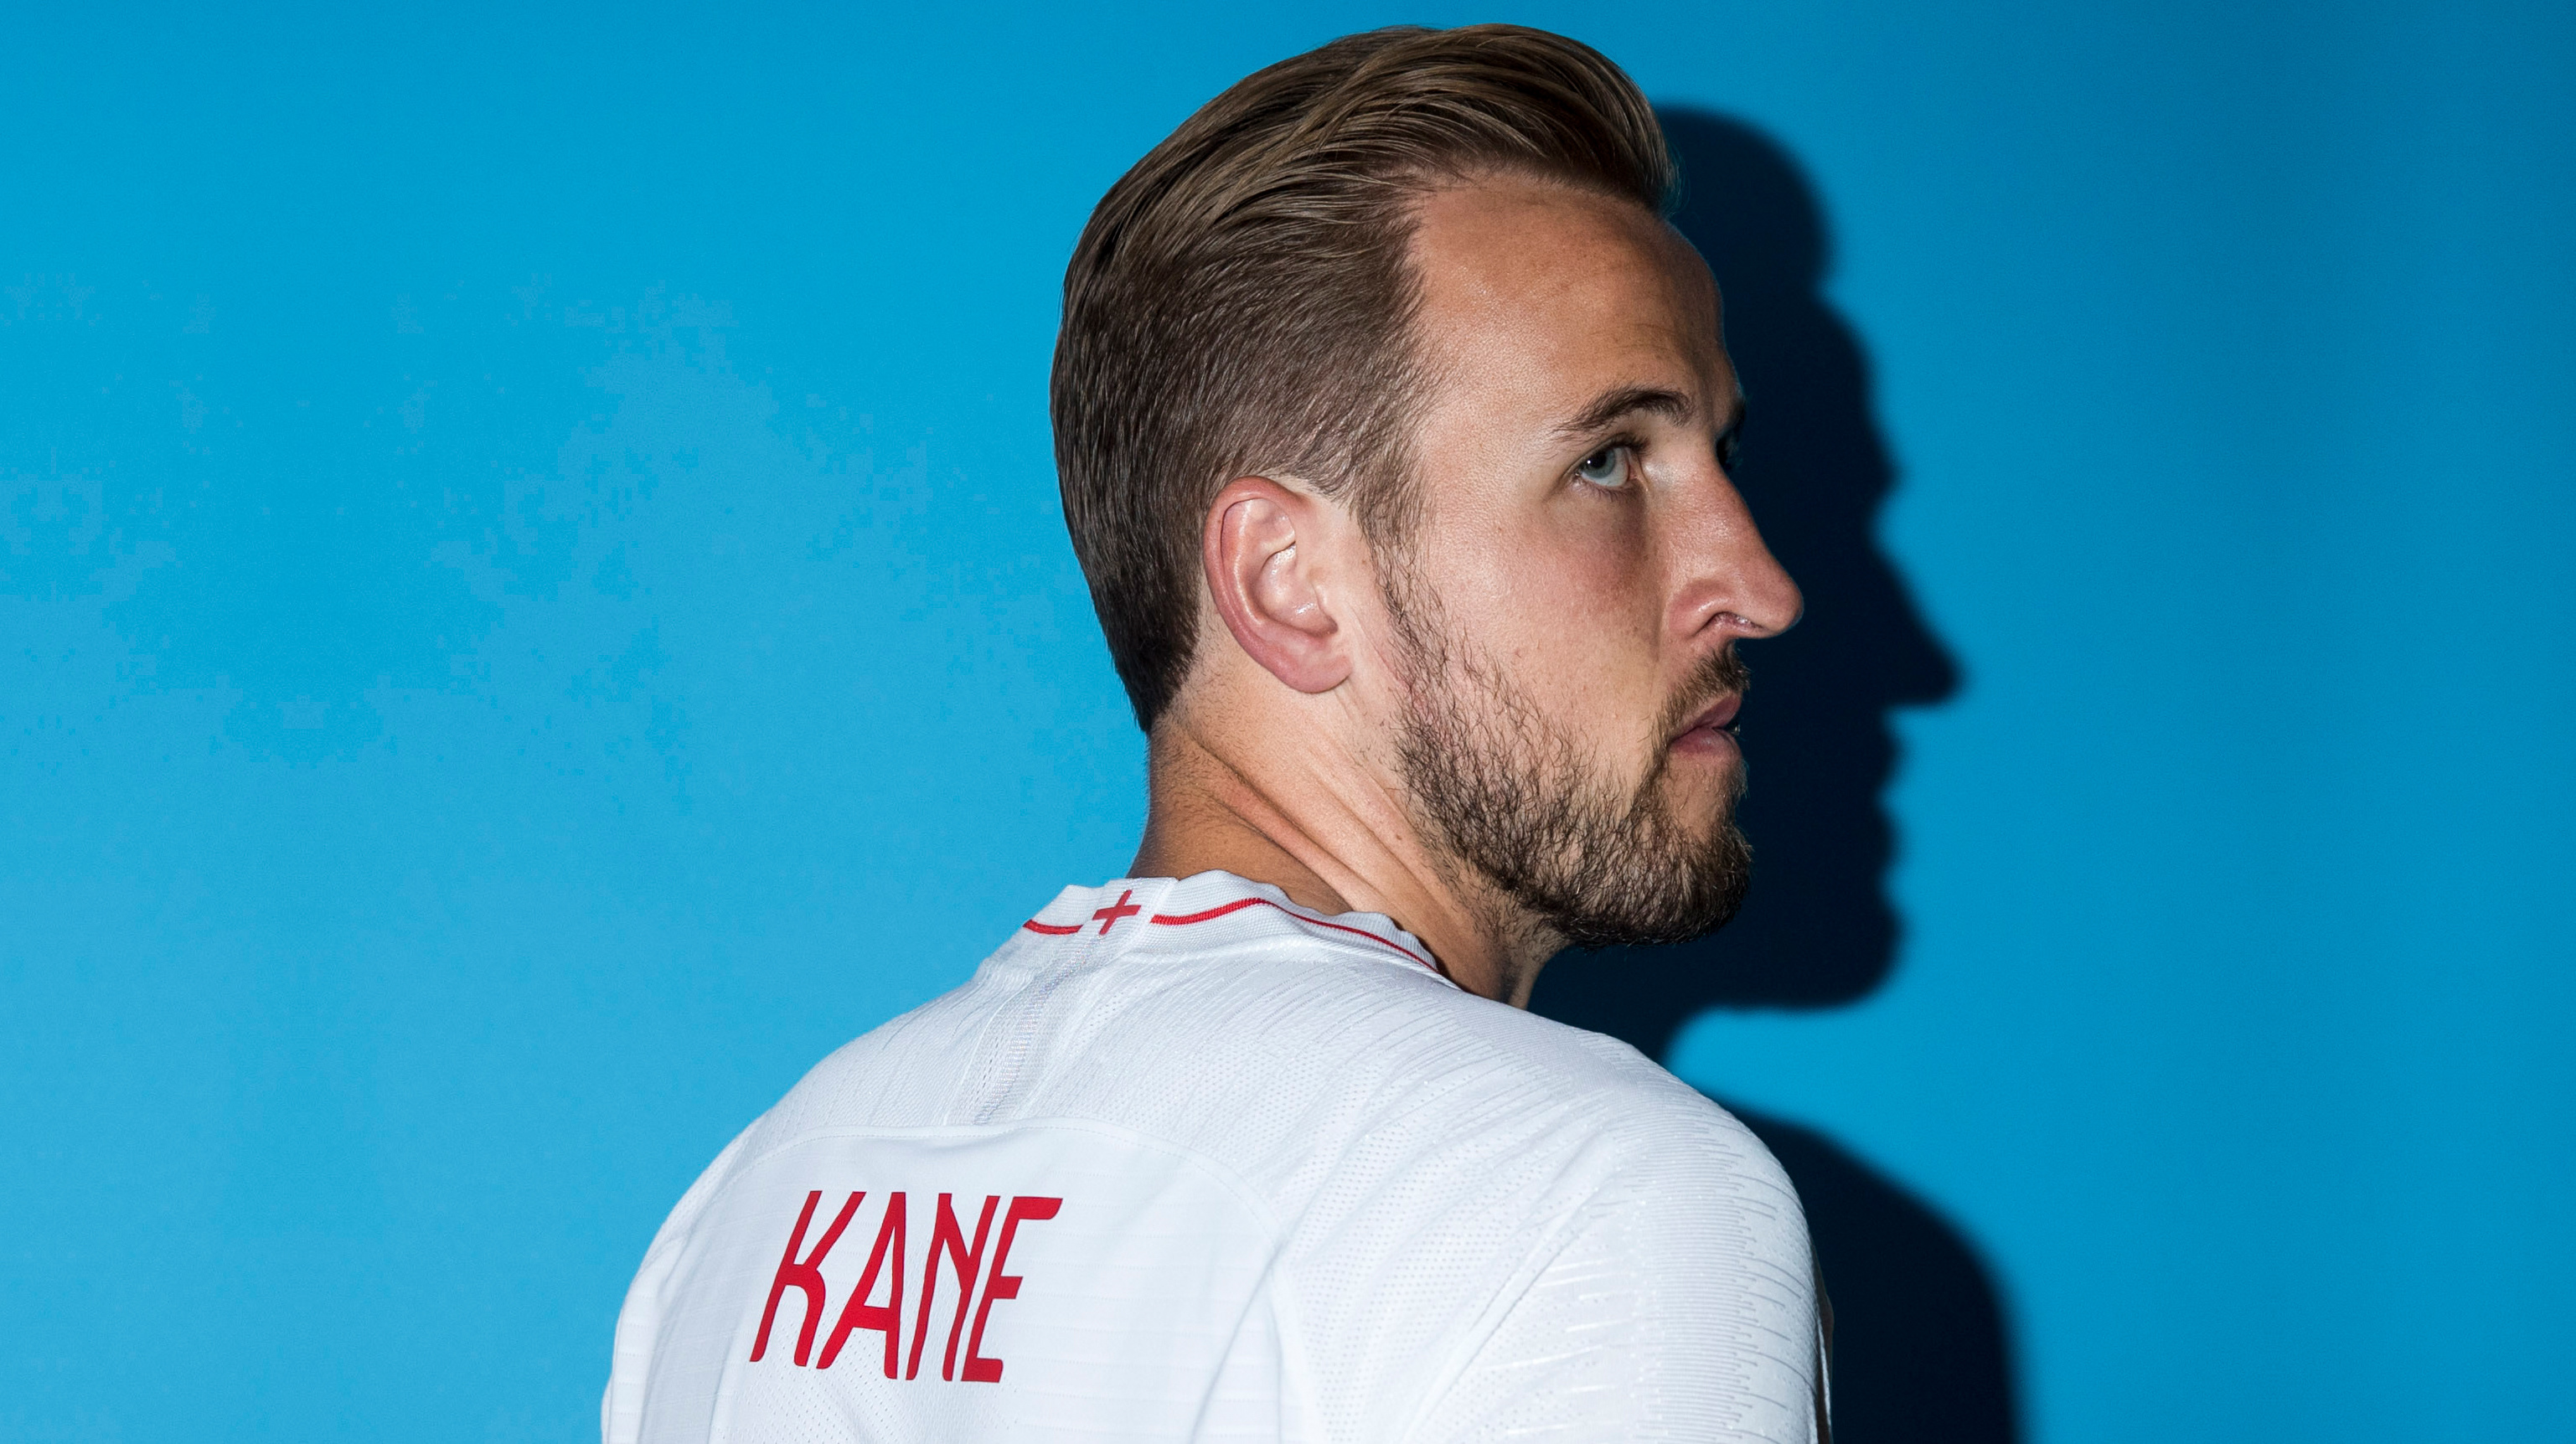 Harry Kane 2018 Wallpaper, HD Sports 4K Wallpapers, Images